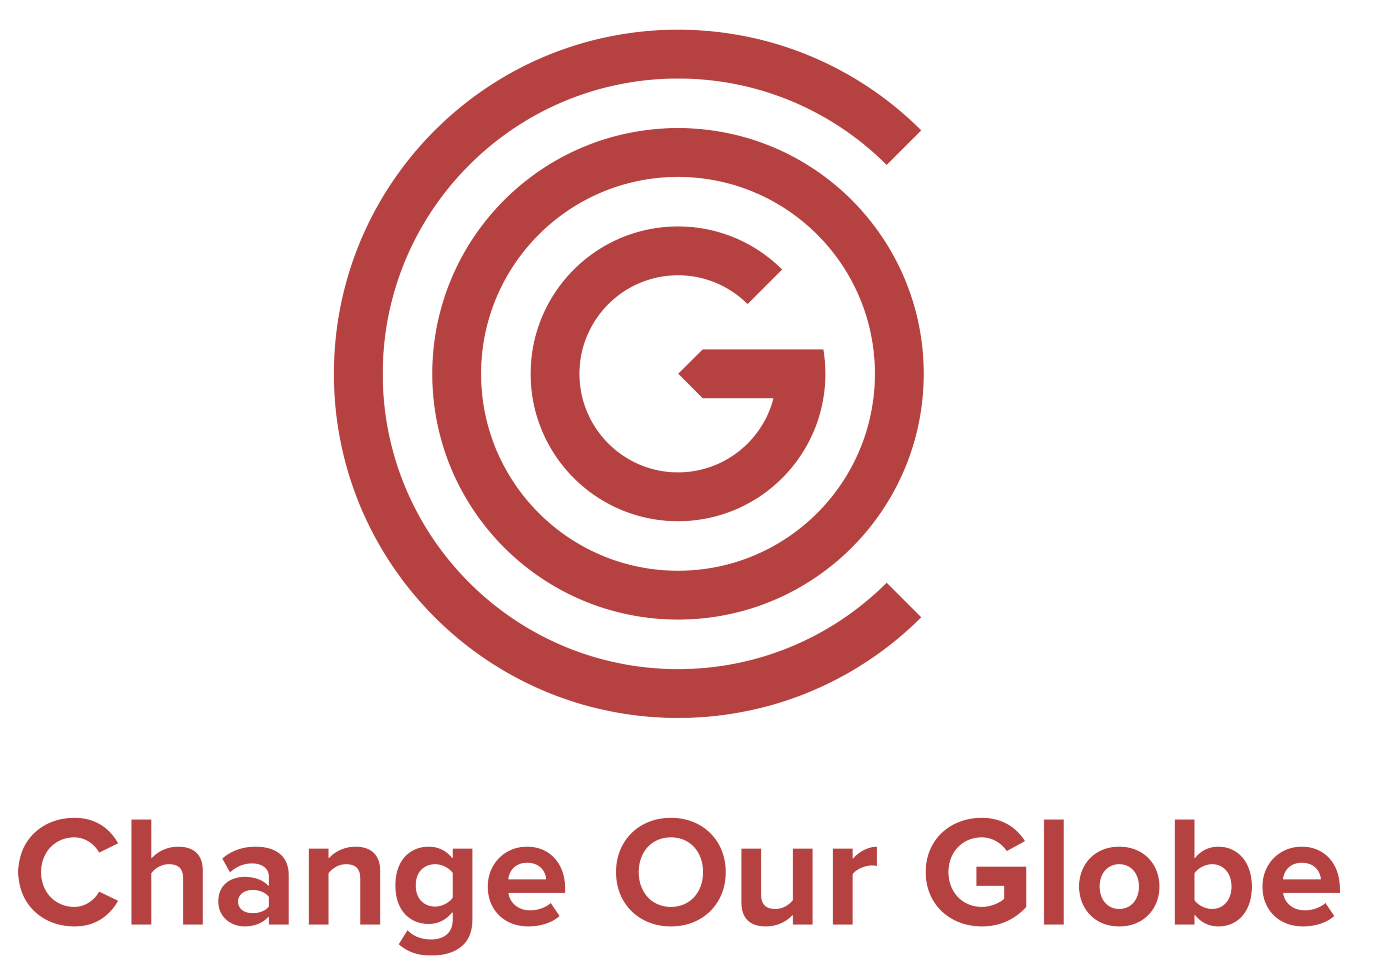 Change Our Globe